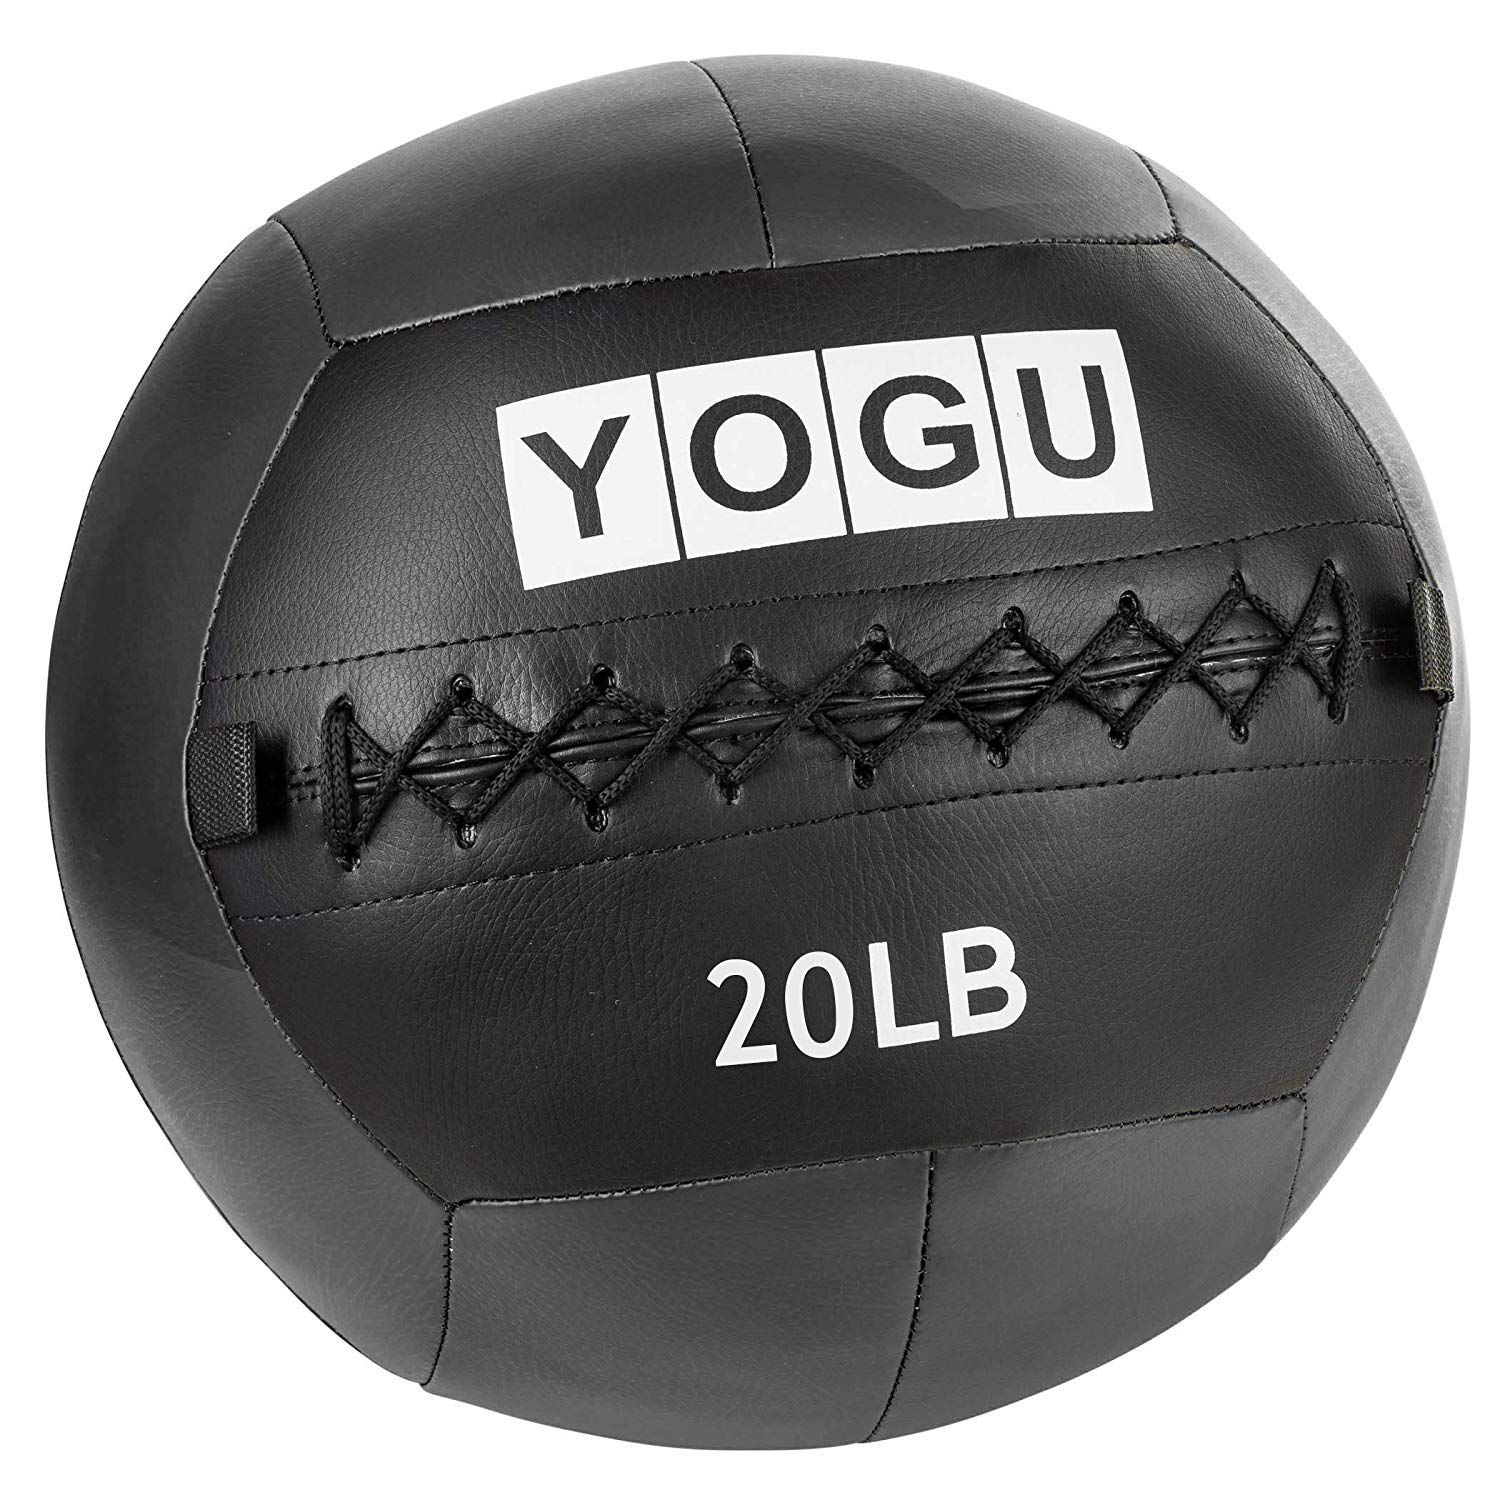 Yogu Soft Medicine Exercise Ball 6 8 10 14 20 Lb Weighted Ball For Muscle Strength Building Training Exerci Workout Accessories Ball Exercises Fitness Training